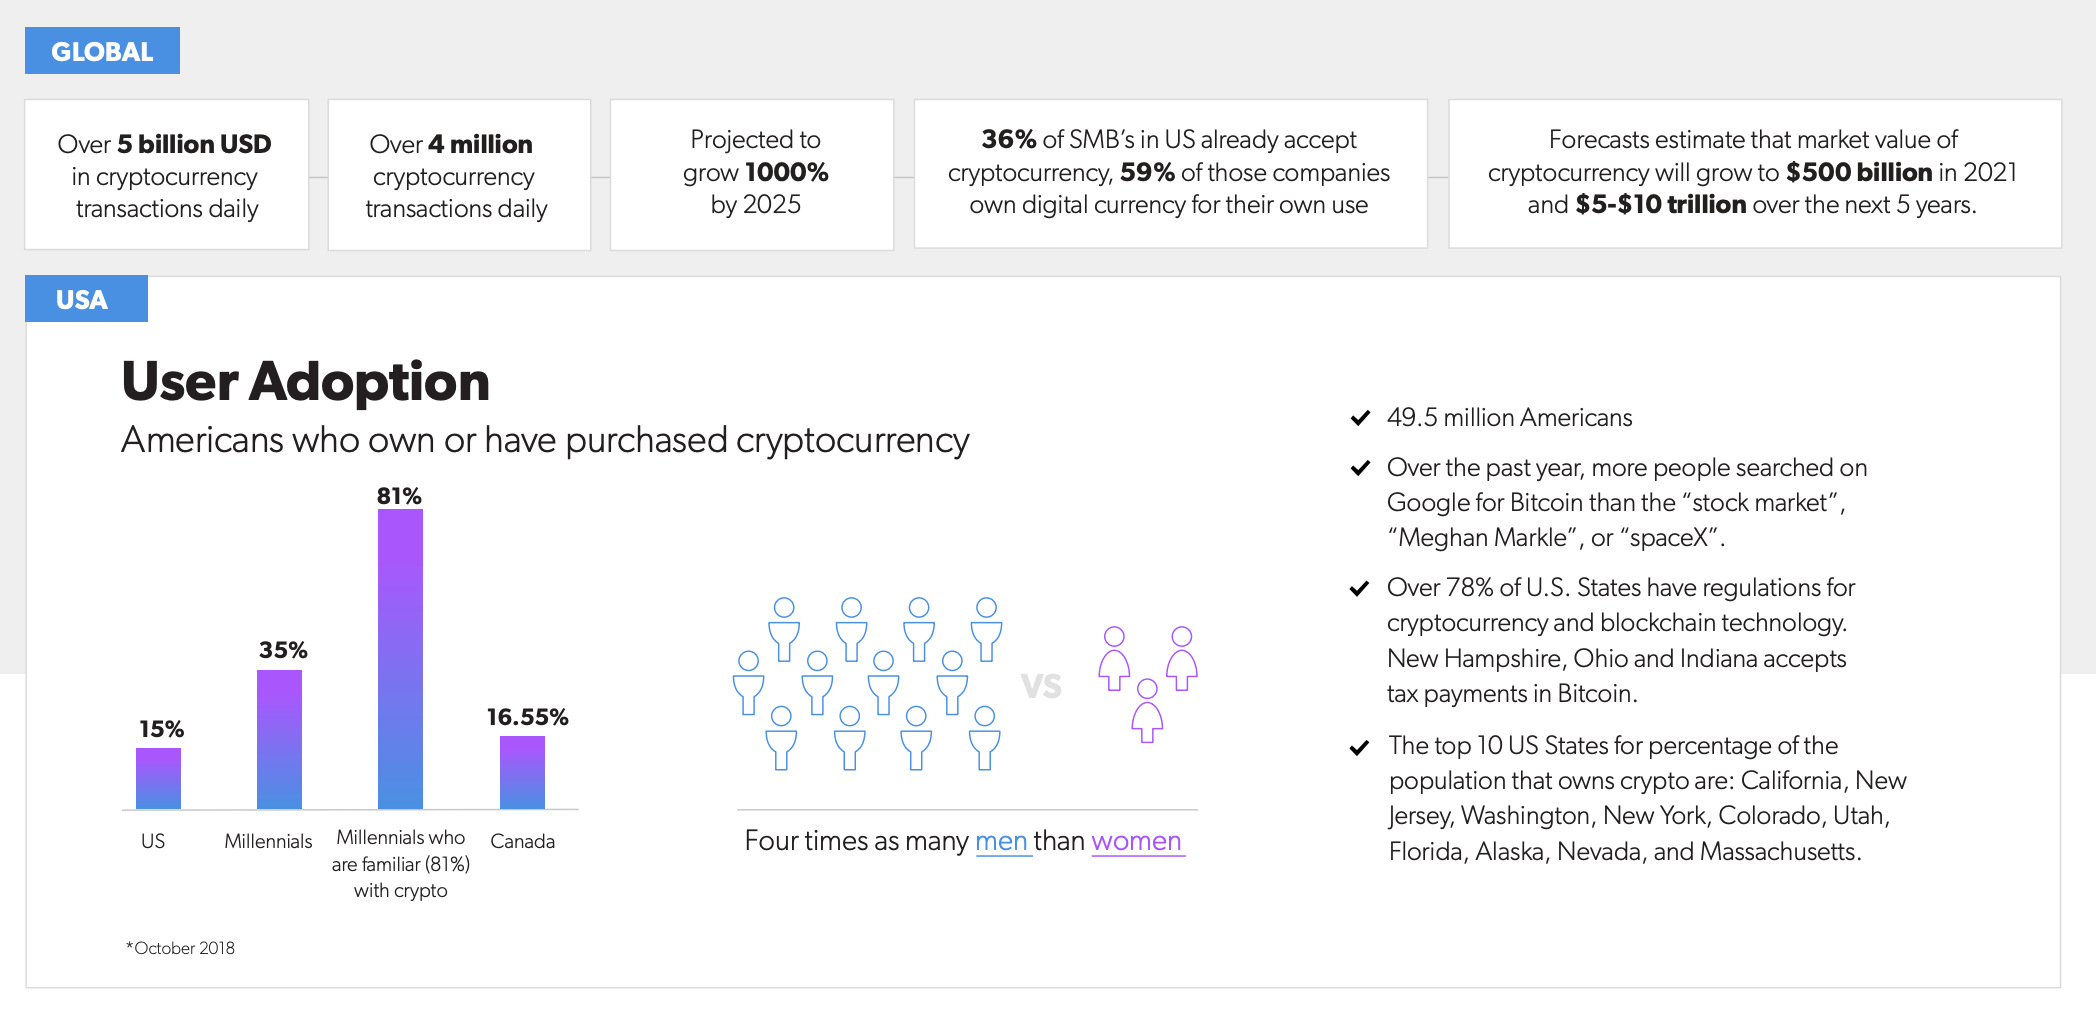 Benefits and statistics related to processing cryptocurrency.